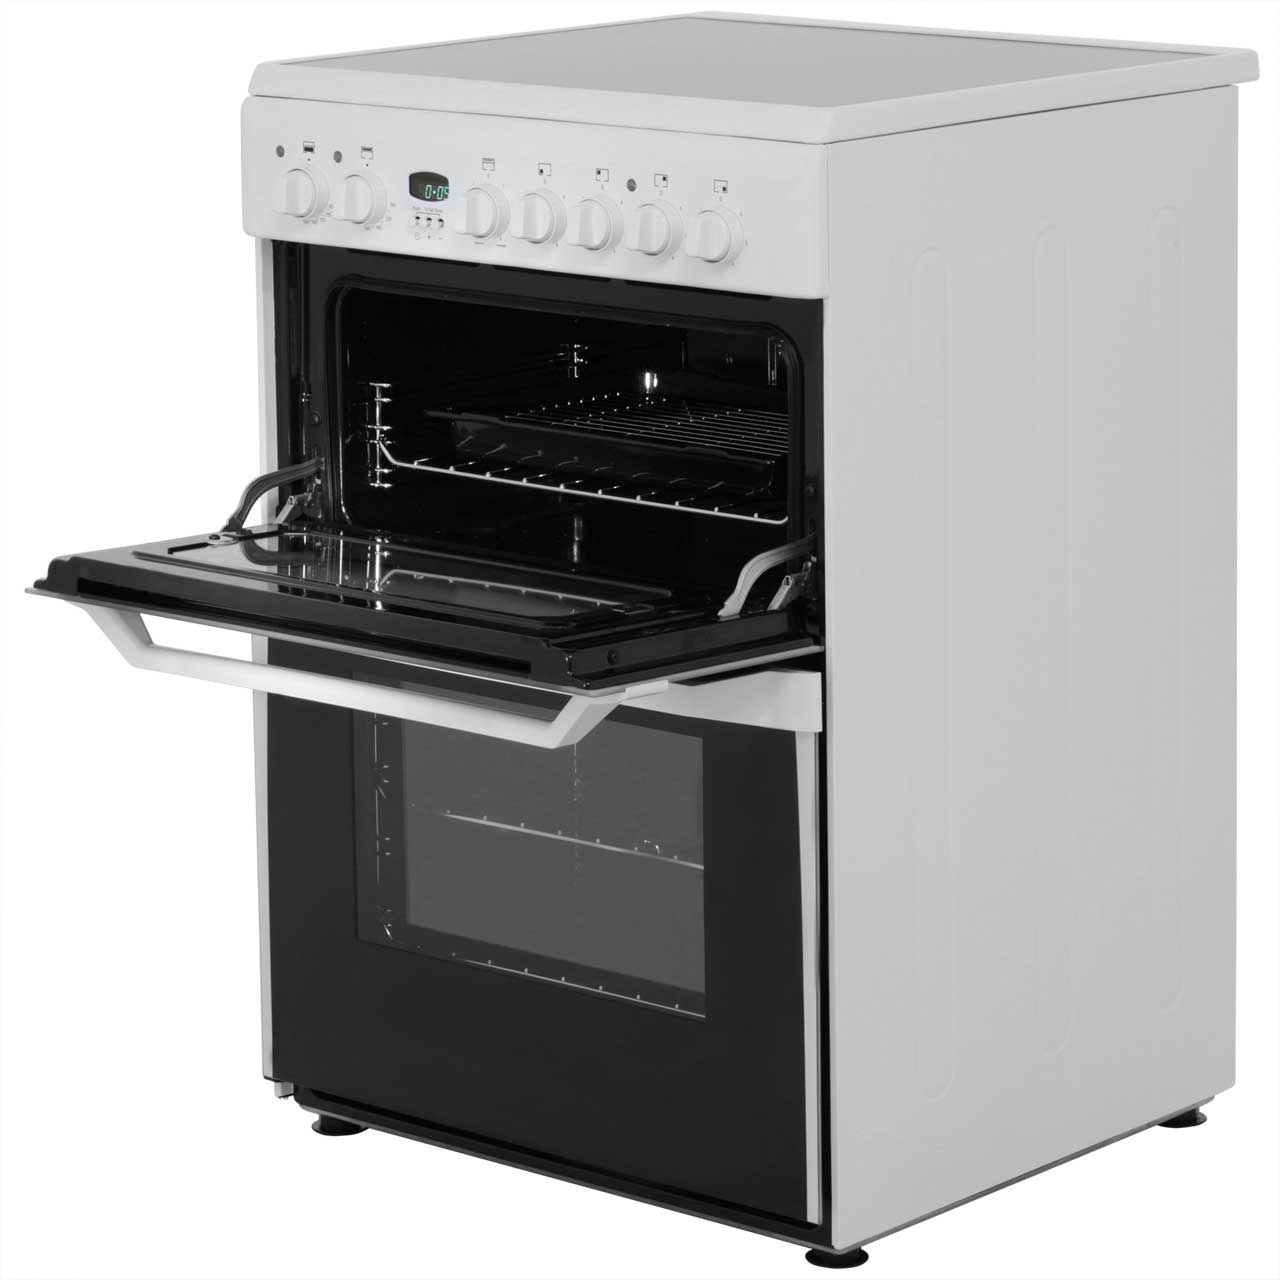 Indesit Id60c2ws 60cm White Double Oven Cooker Electric